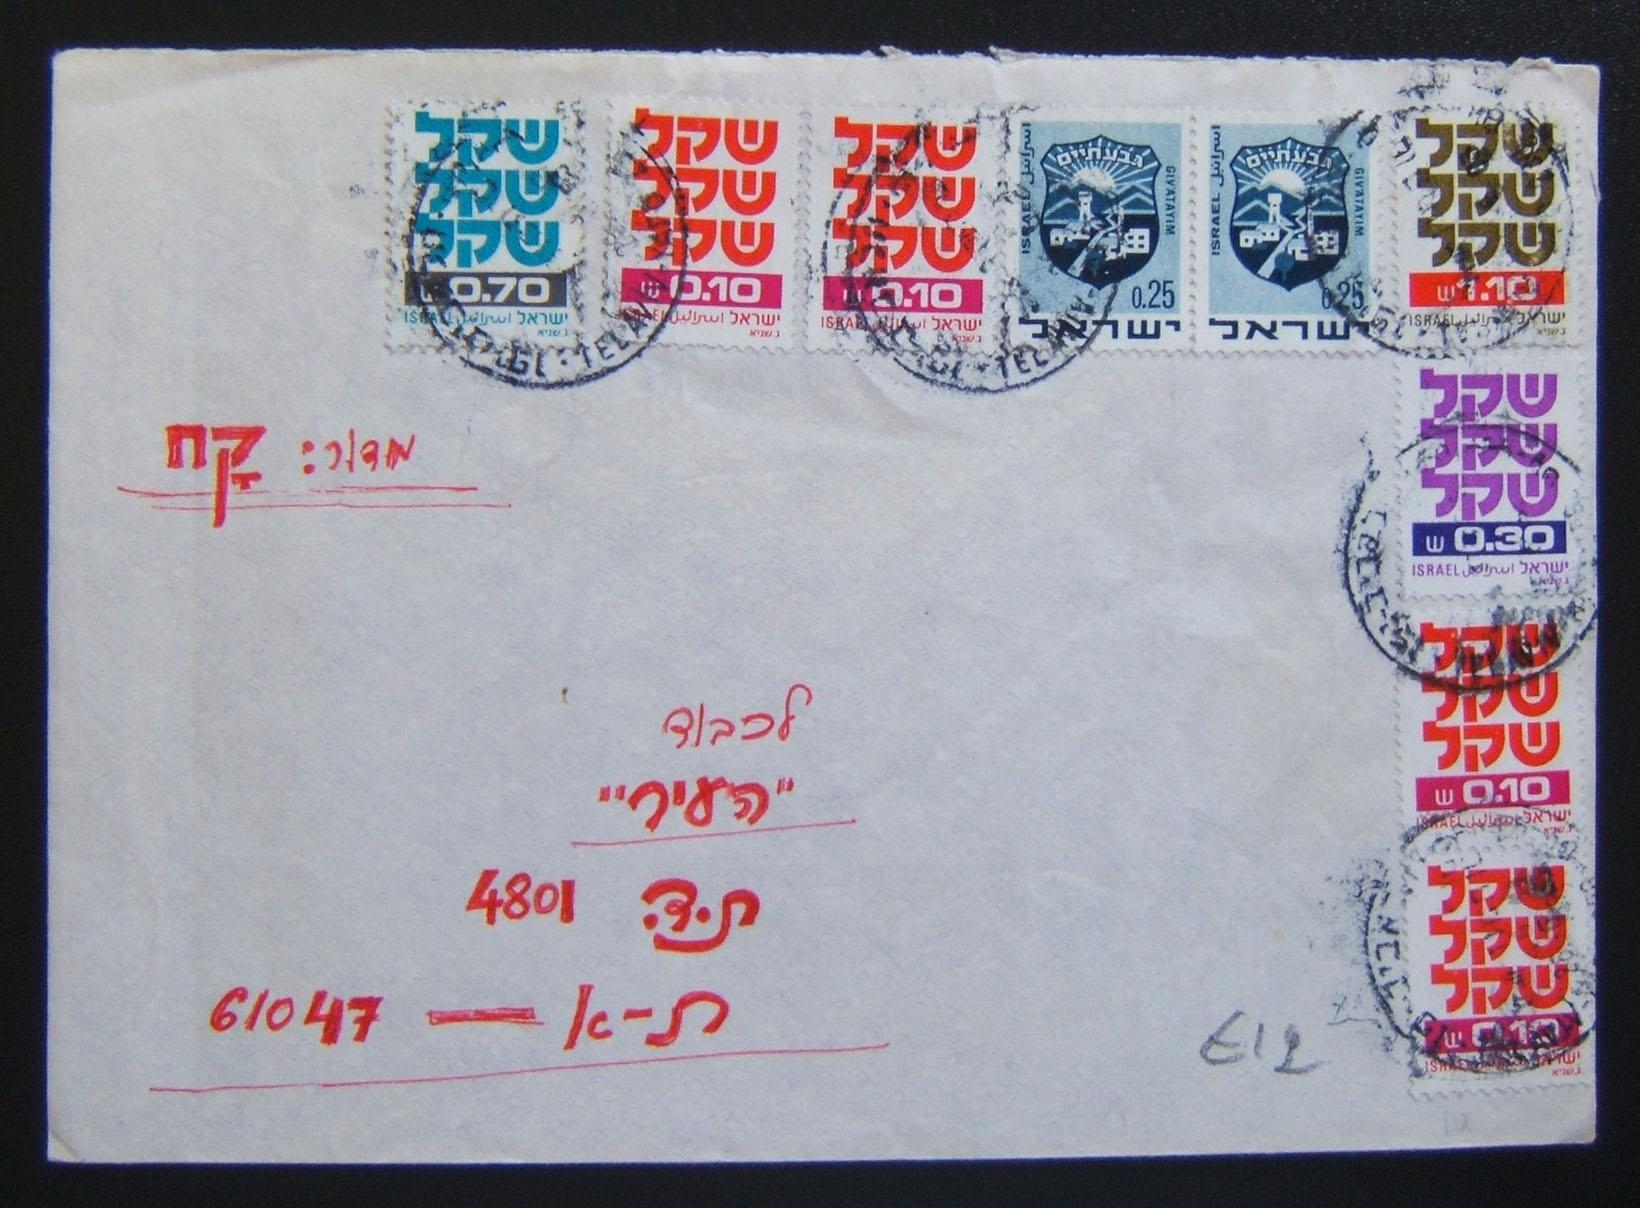 1983 Shekel inflation mixed currency franked cover: 26-6-1983 local TLV commercial cover franked 2.50Sh + 0.50L (worth 5 'new' Agorot) at the DO-41/42 period (5 days prior to 2.60S